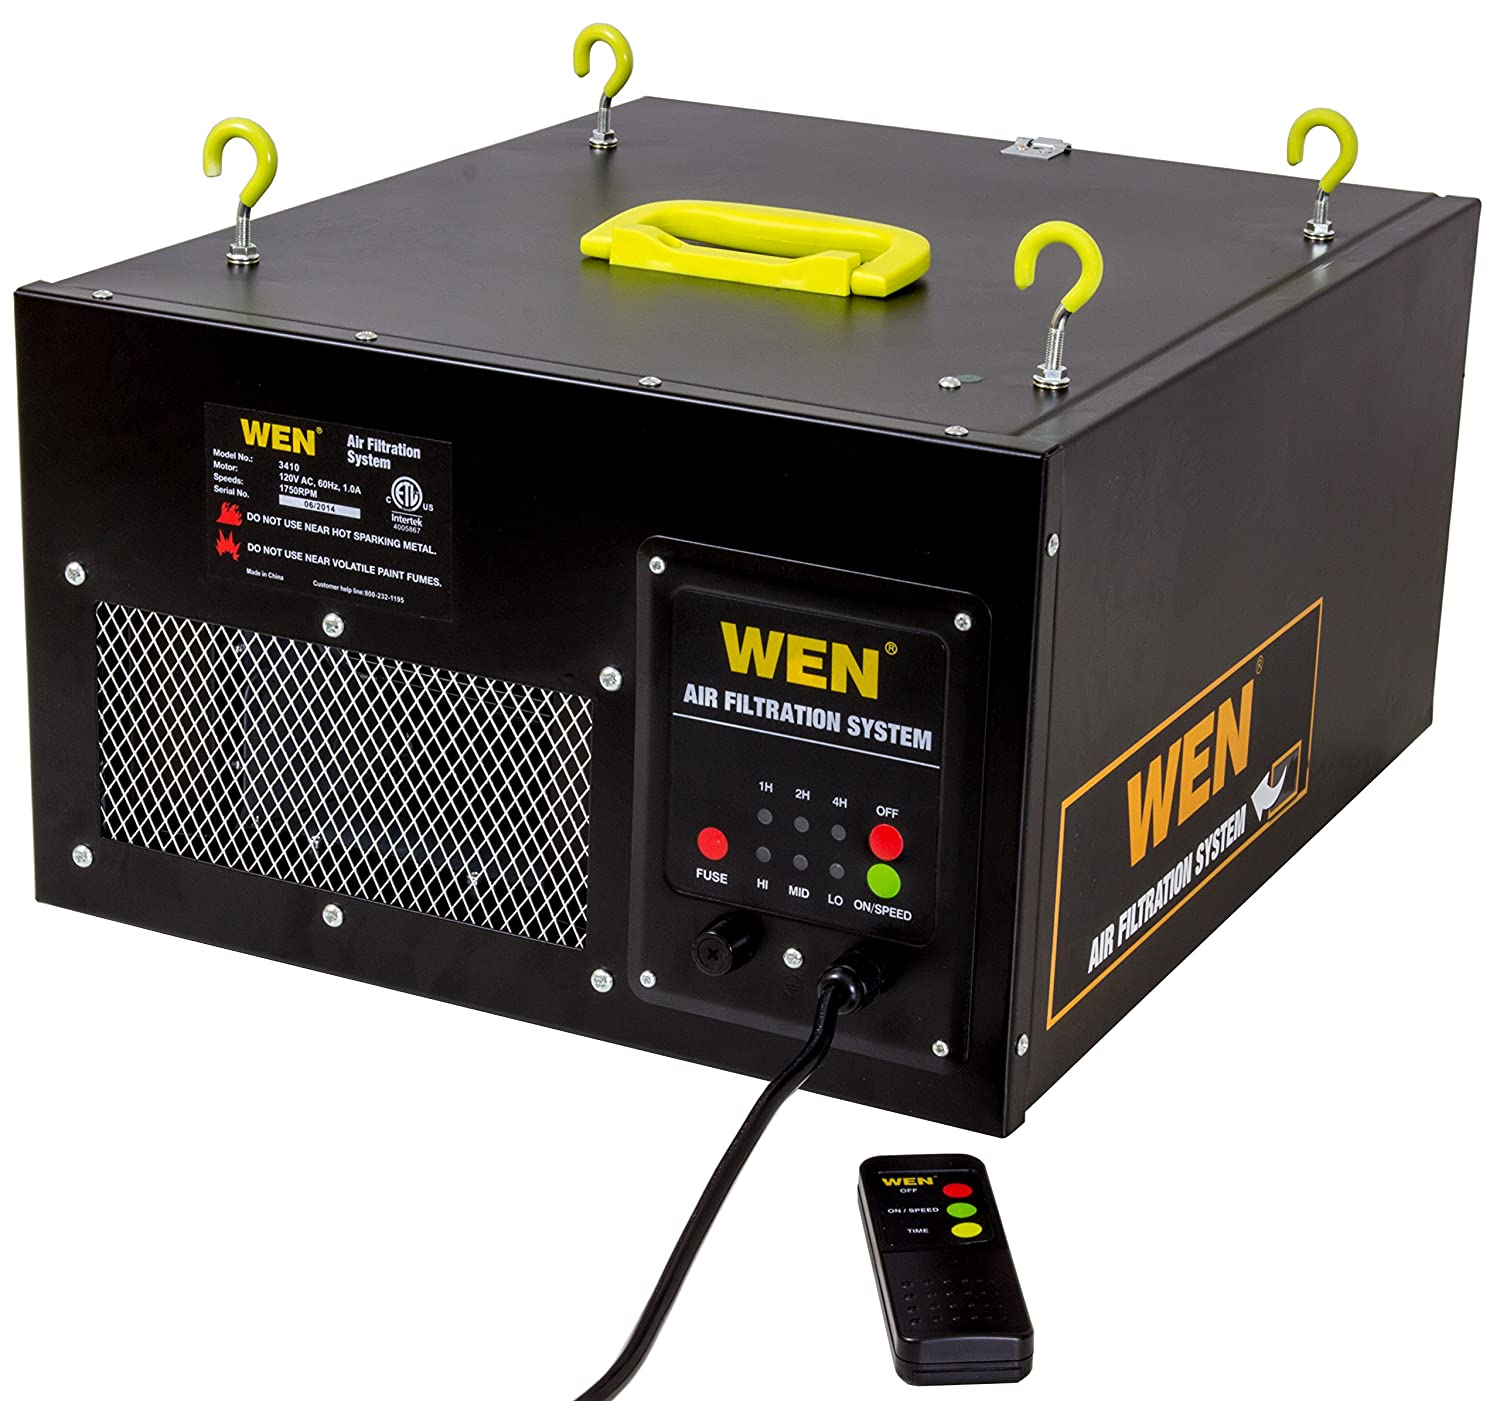 Air Filtration Units : Wen speed remote controlled air filtration system